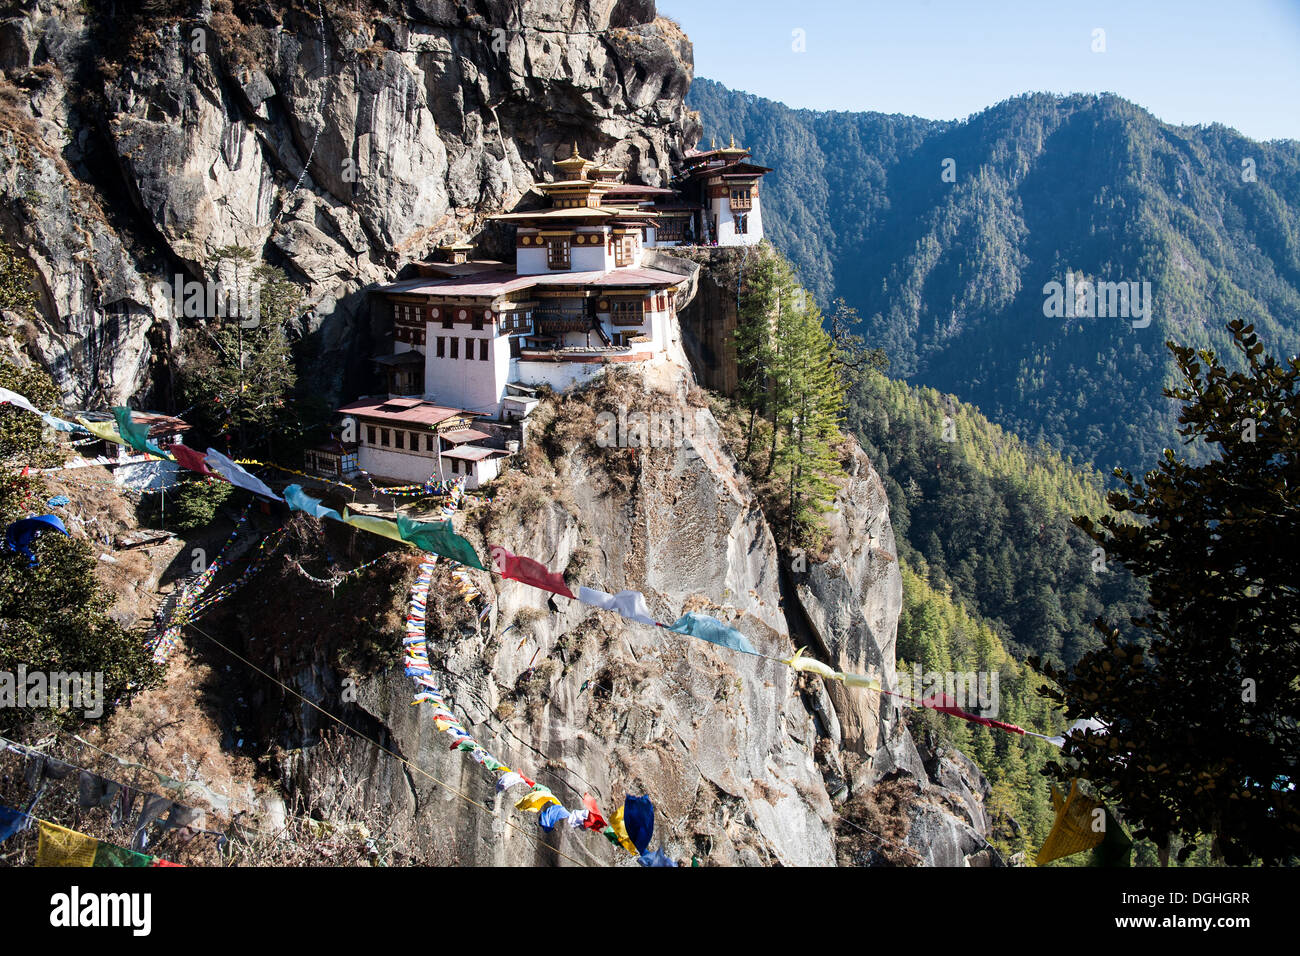 The view of Taktsang (Tigers Lair) Monastery. Perched precariously on the side of a cliff, Paro Valley Bhutan. - Stock Image